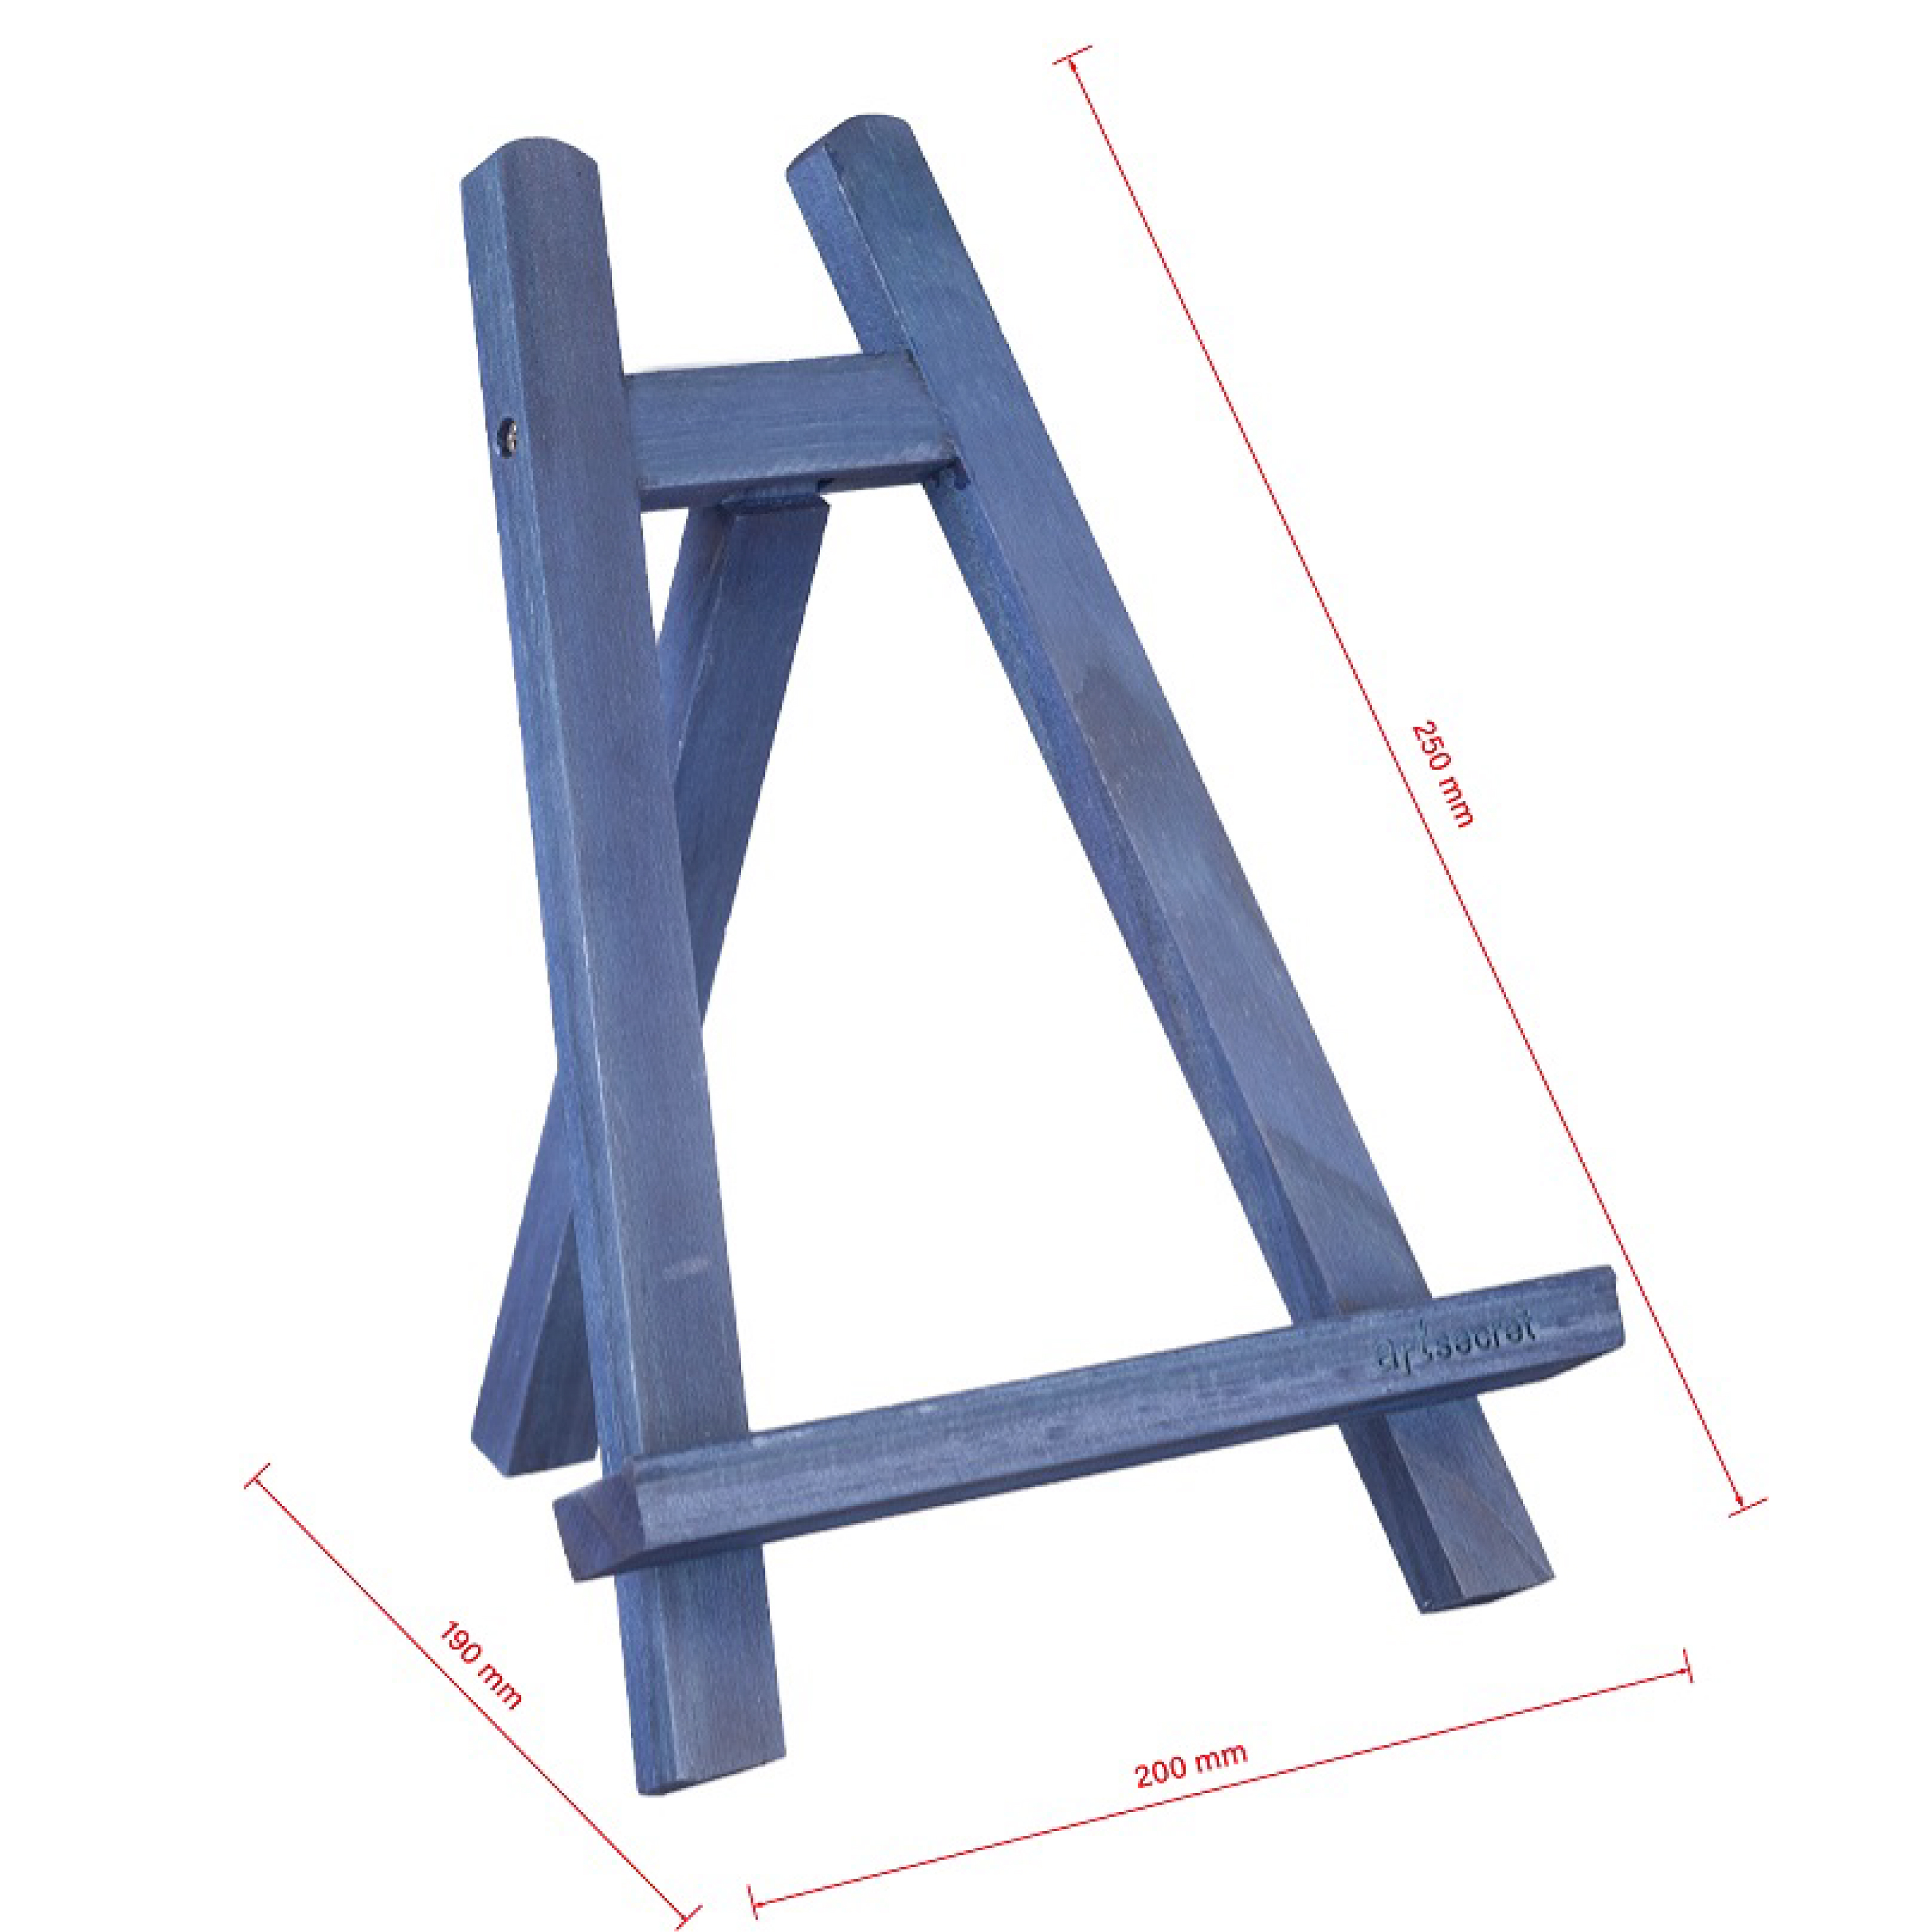 SWE120  Mini Table Wood Easel For Artist Easel Painting Craft  Exhibition Display Shelf Holder Studio Decoration Art Supplier